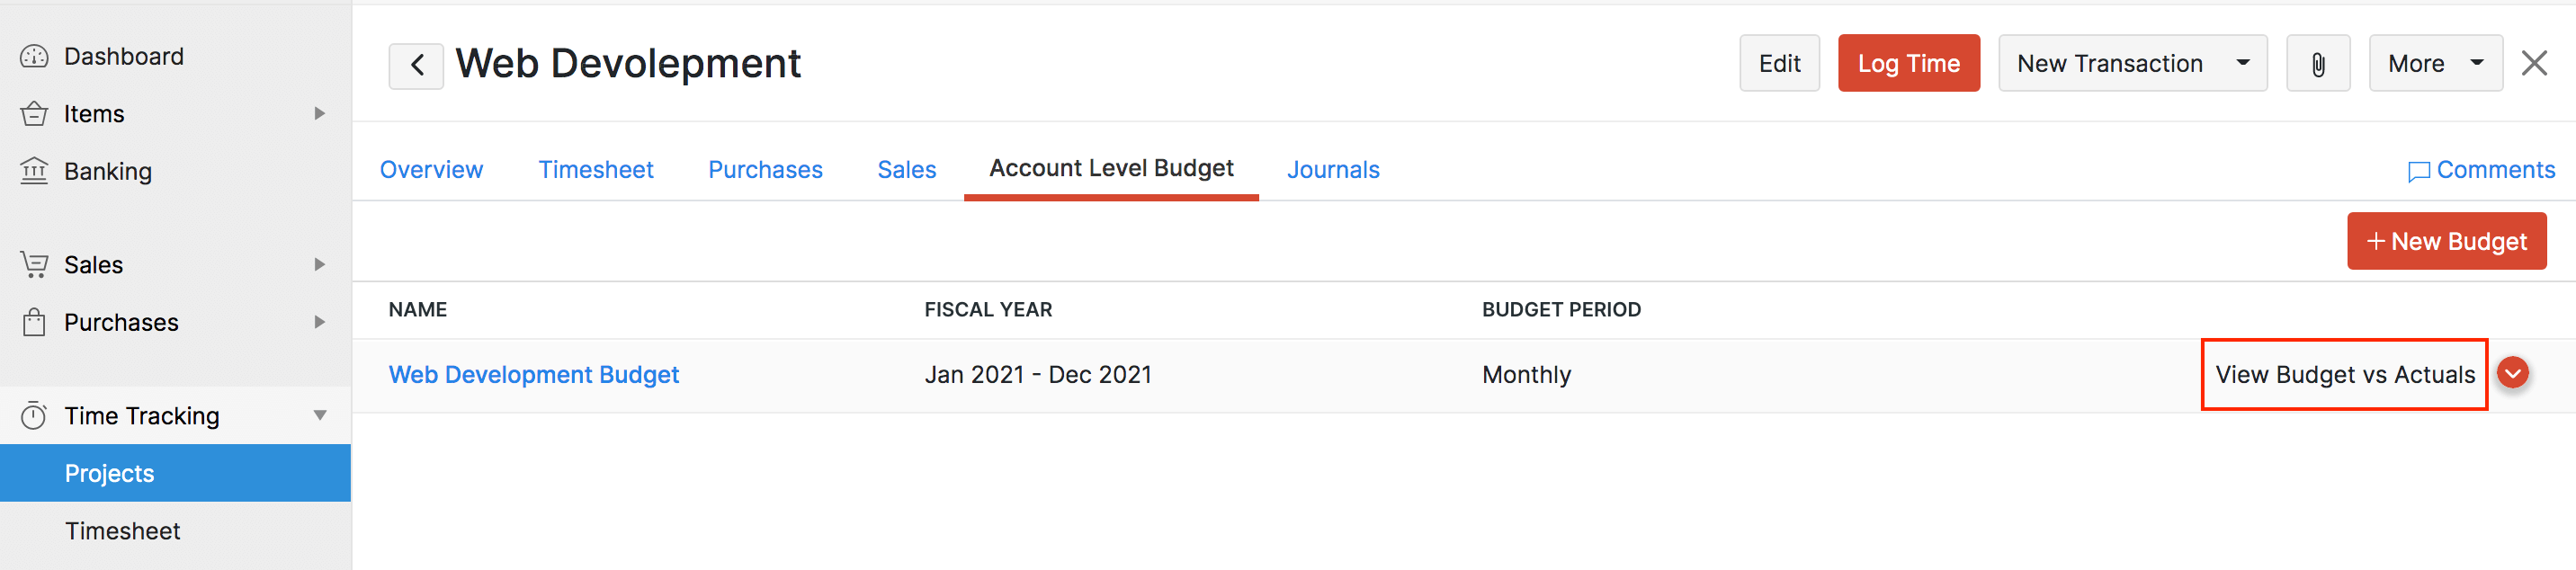 Project Overview Budget